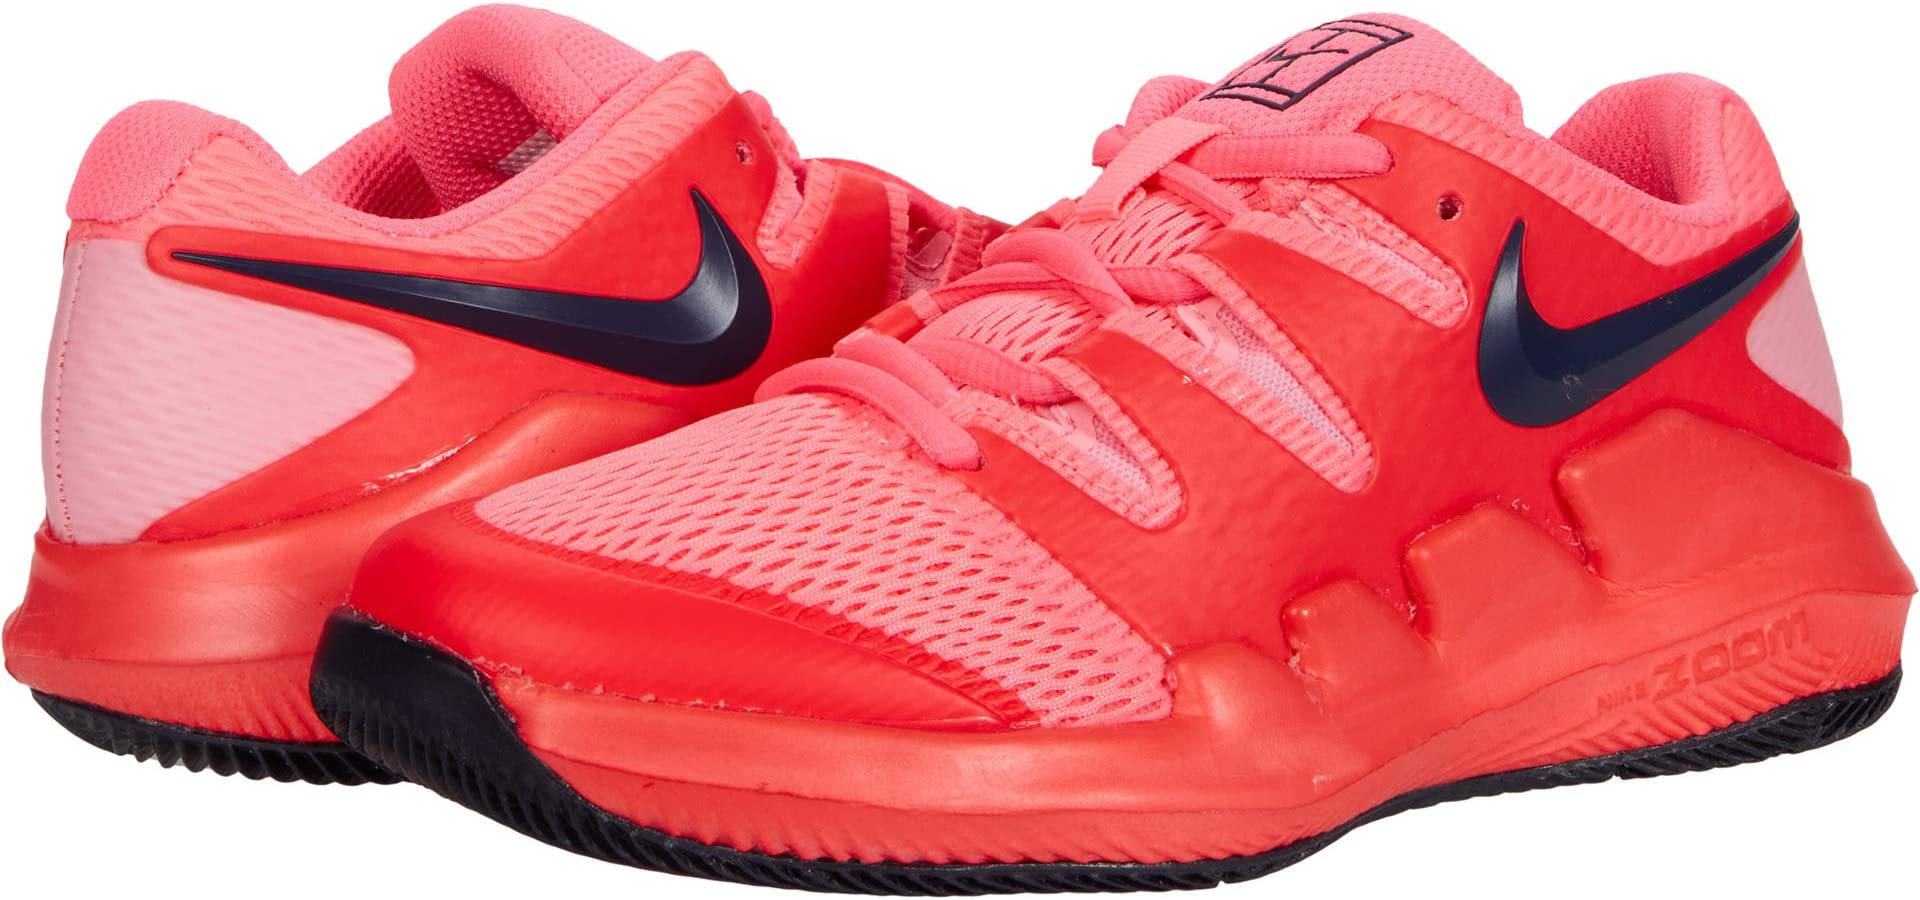 Nike  Shoes, Activewear, Bags